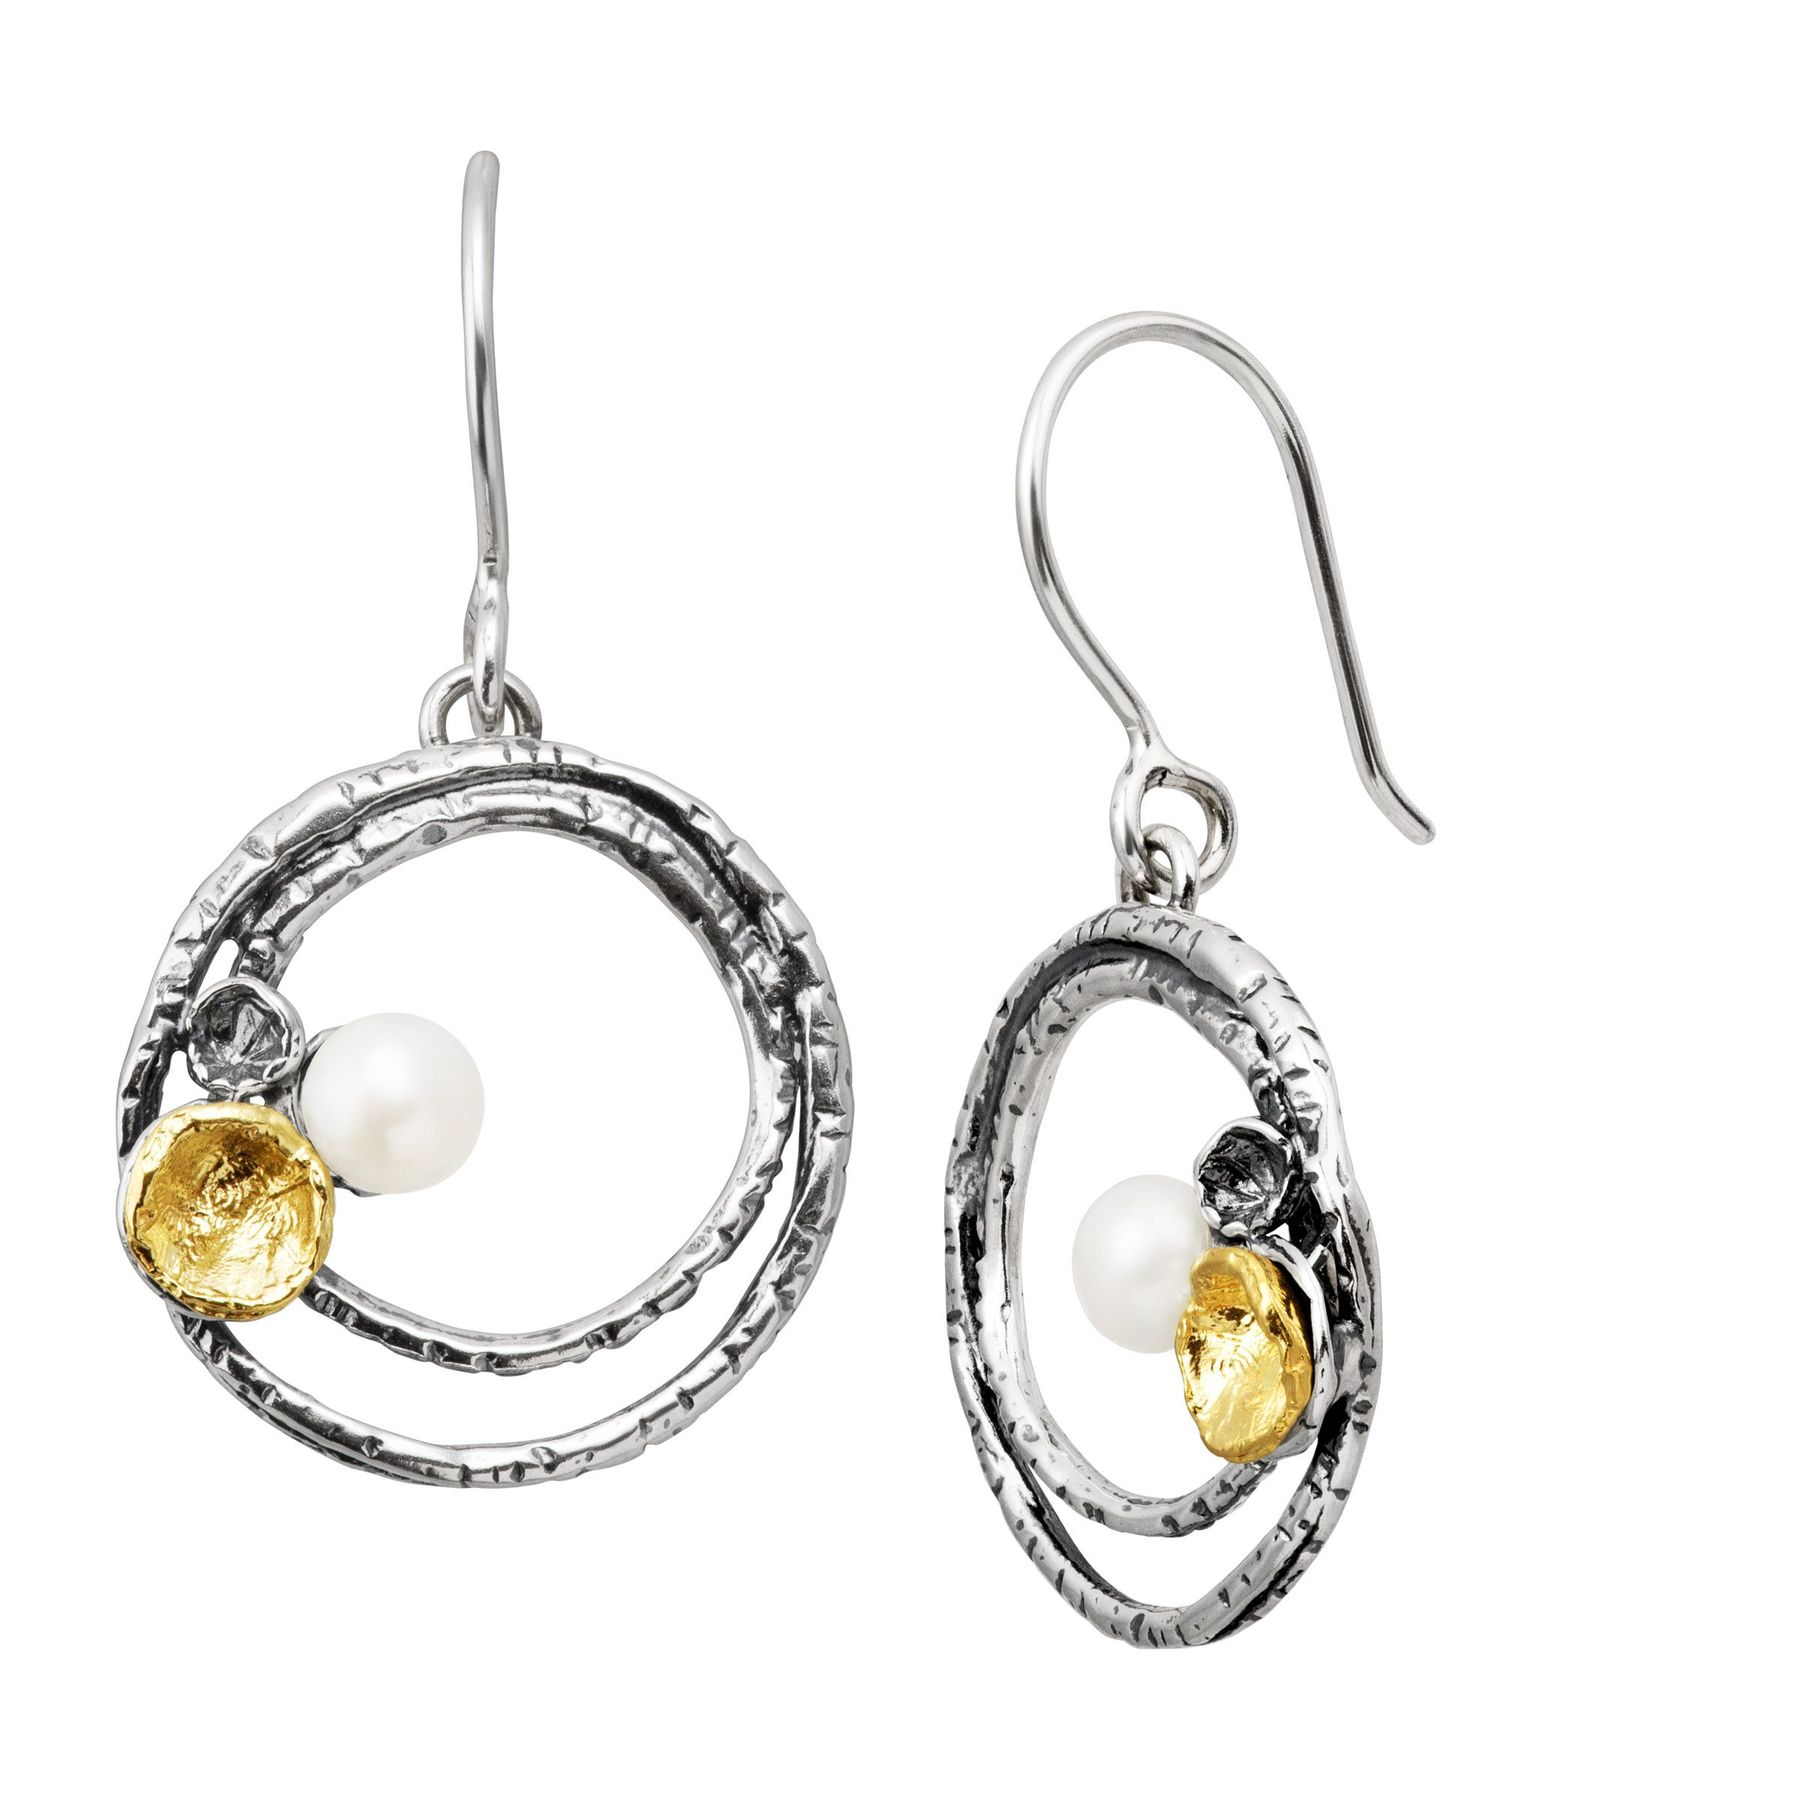 Sterling Silver Dish Earrings with Pearl